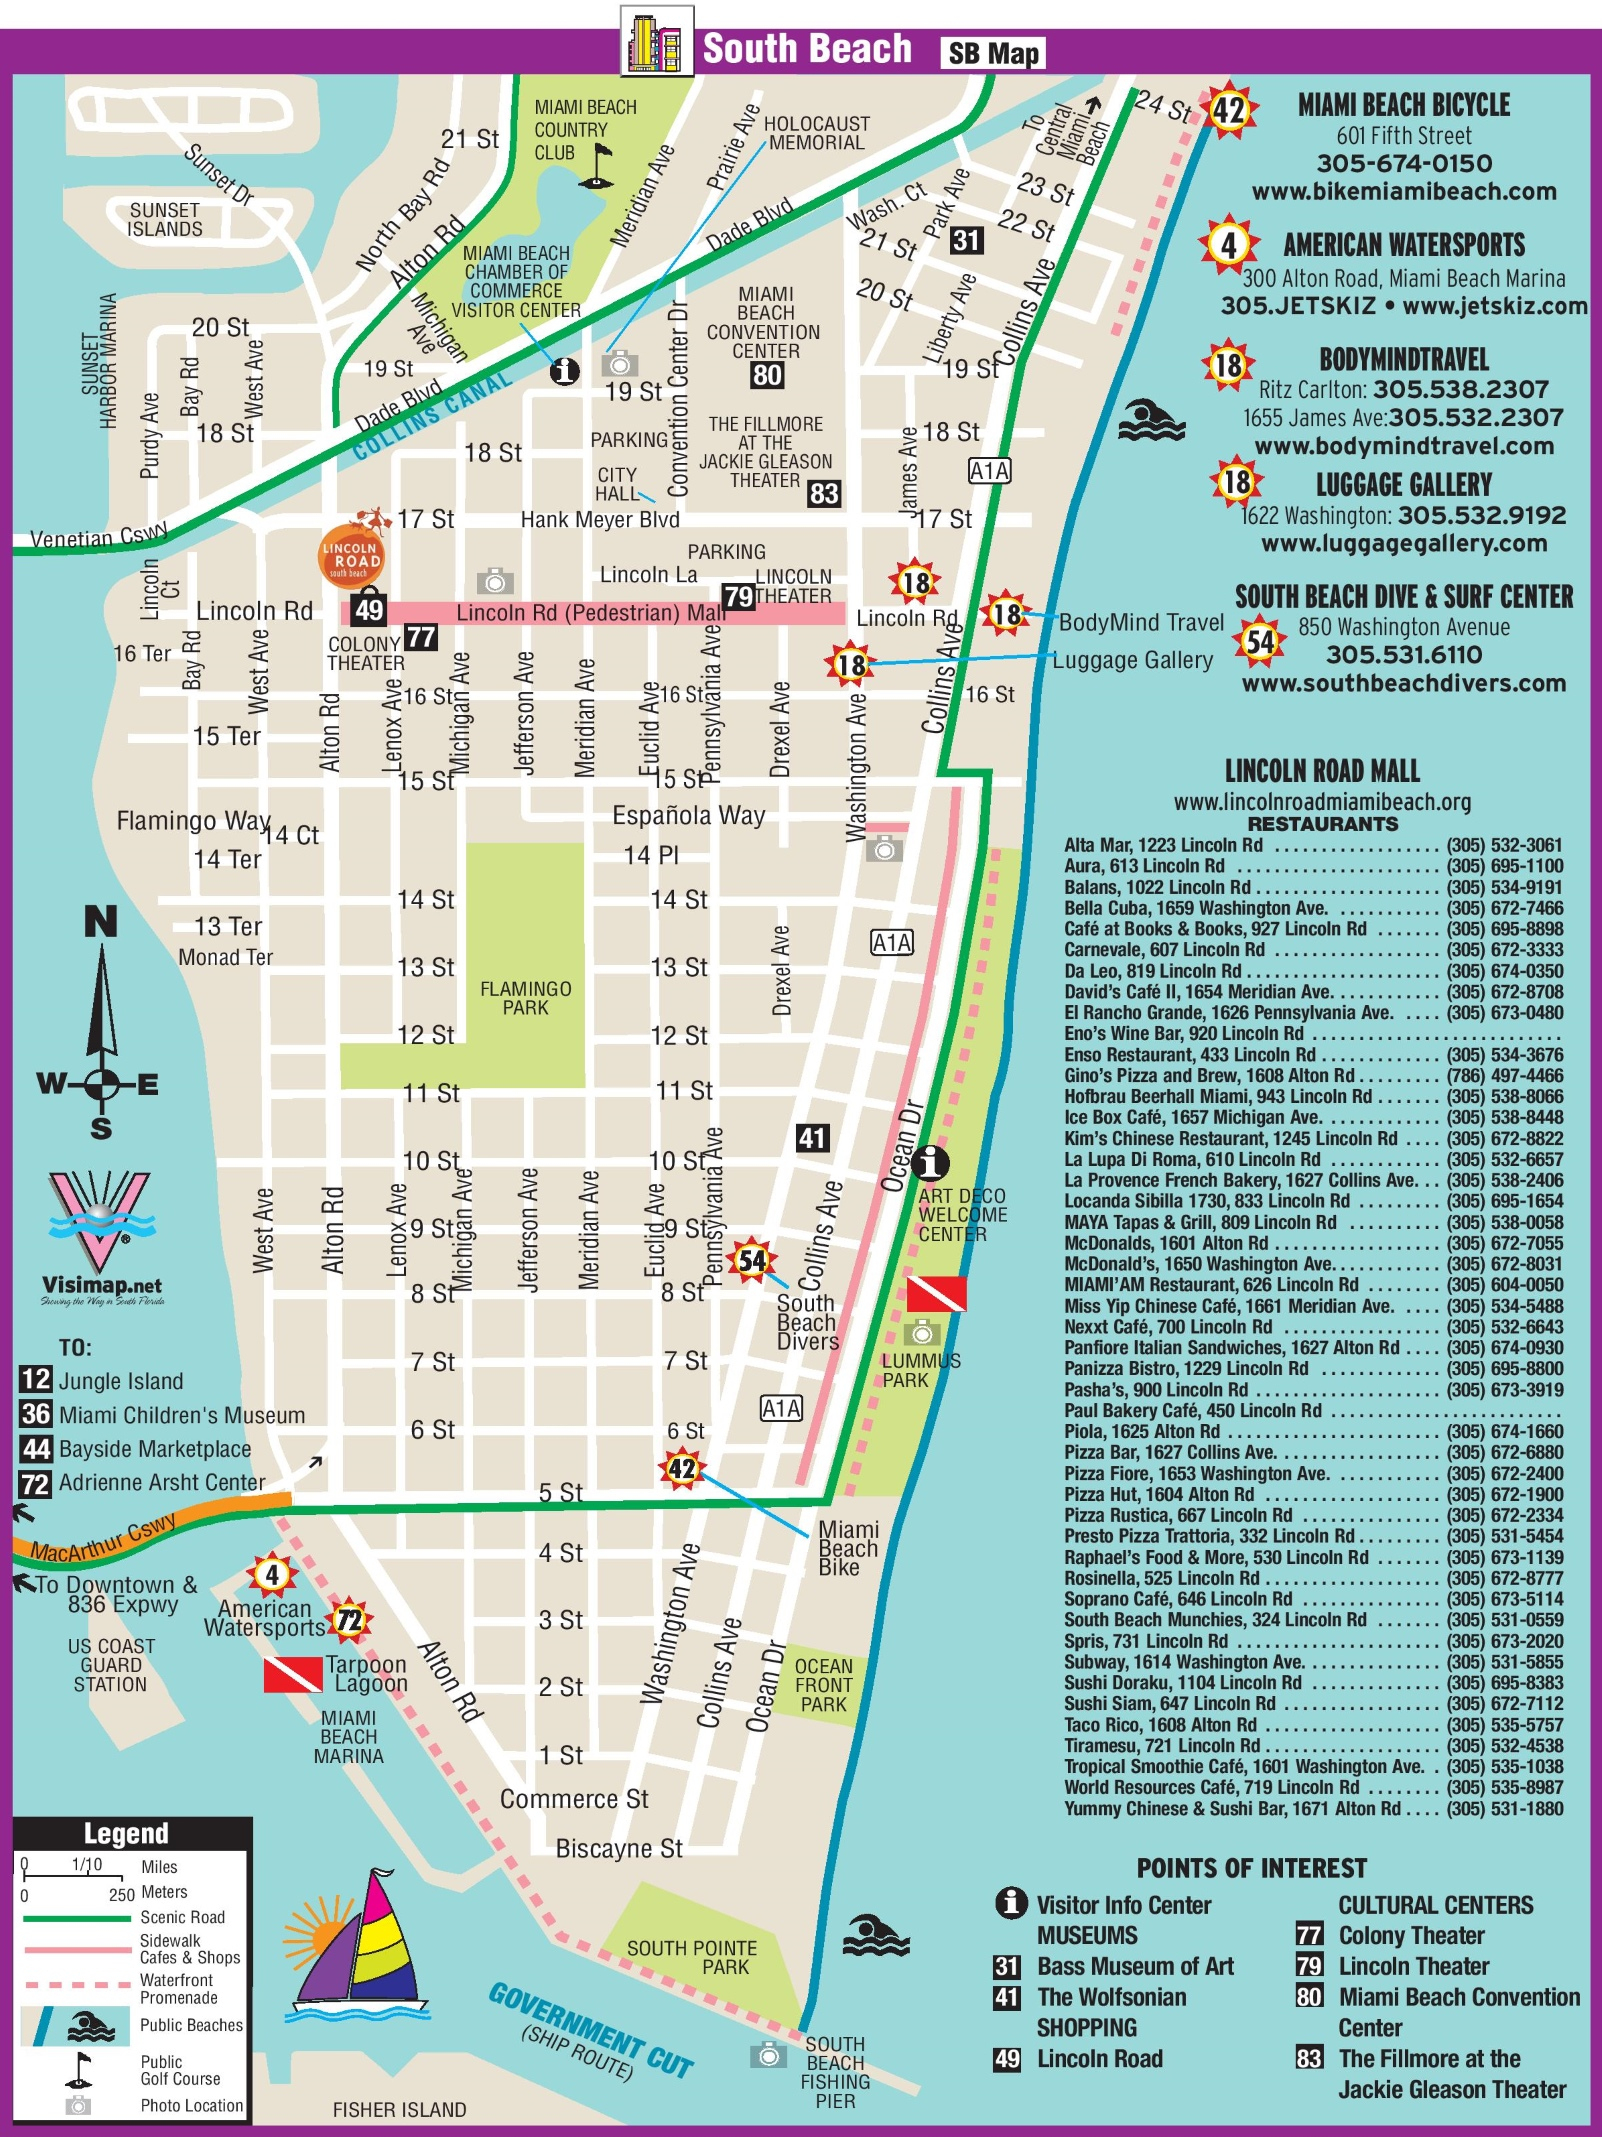 South Beach Restaurant And Sightseeing Map - South Beach Florida Map